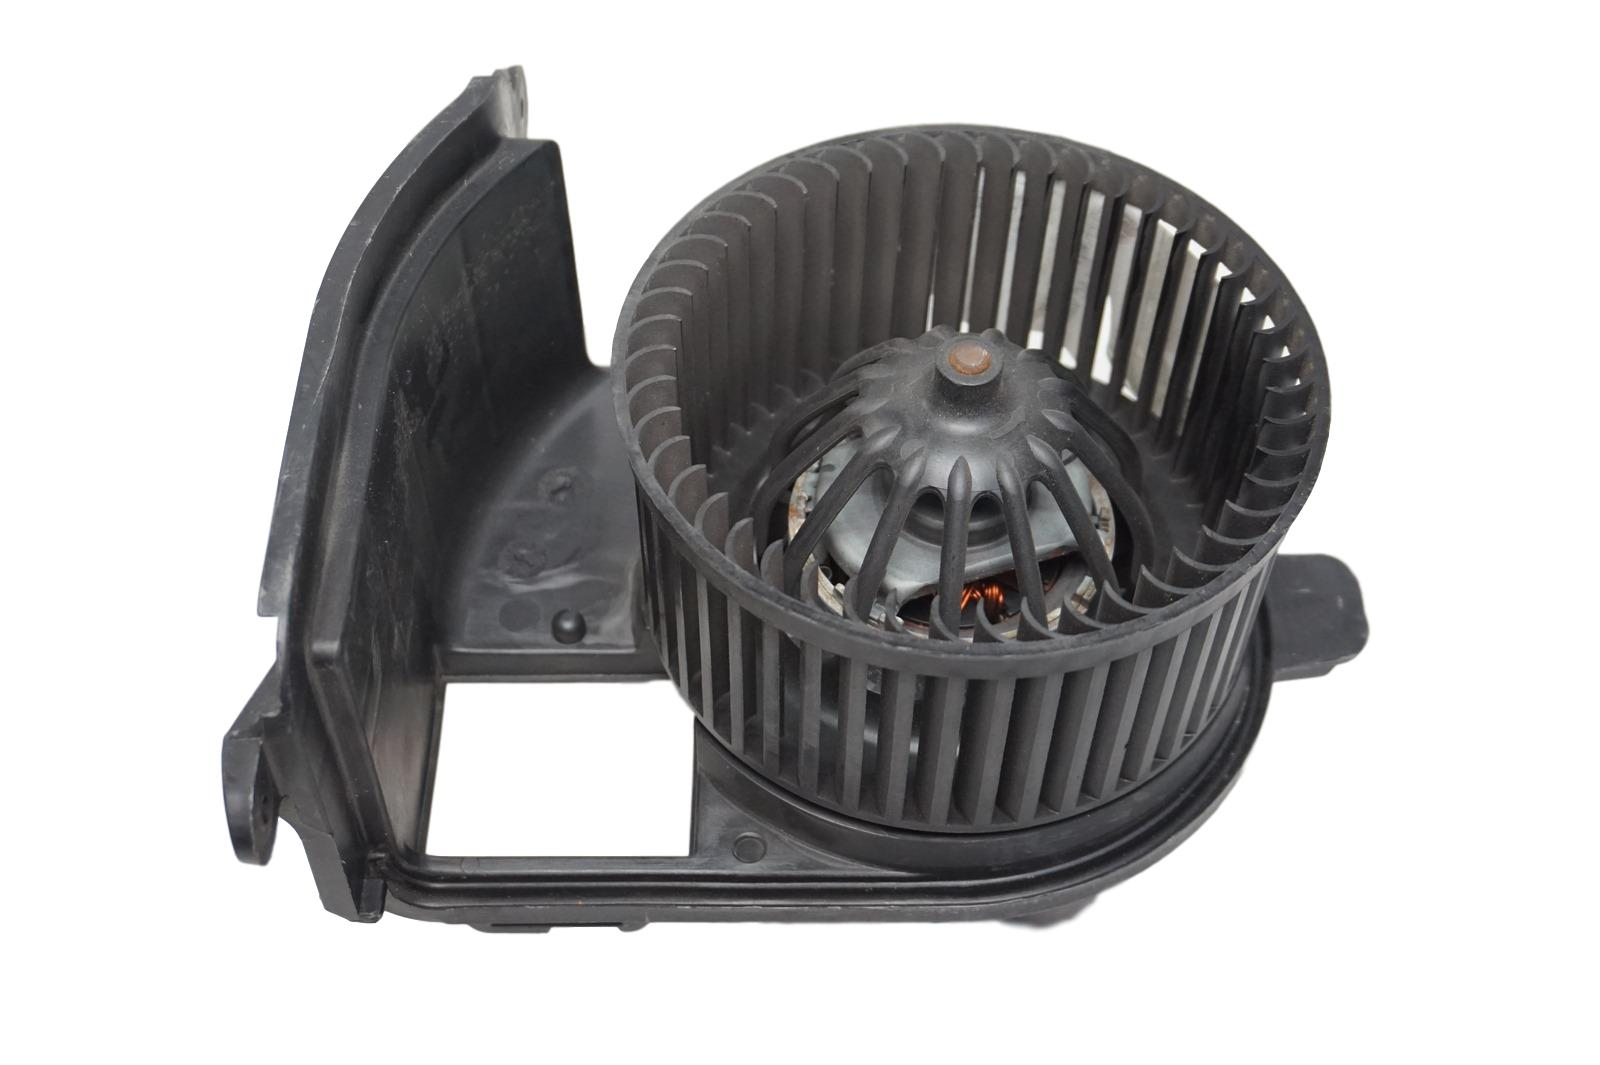 renault clio heater fan replacement cost